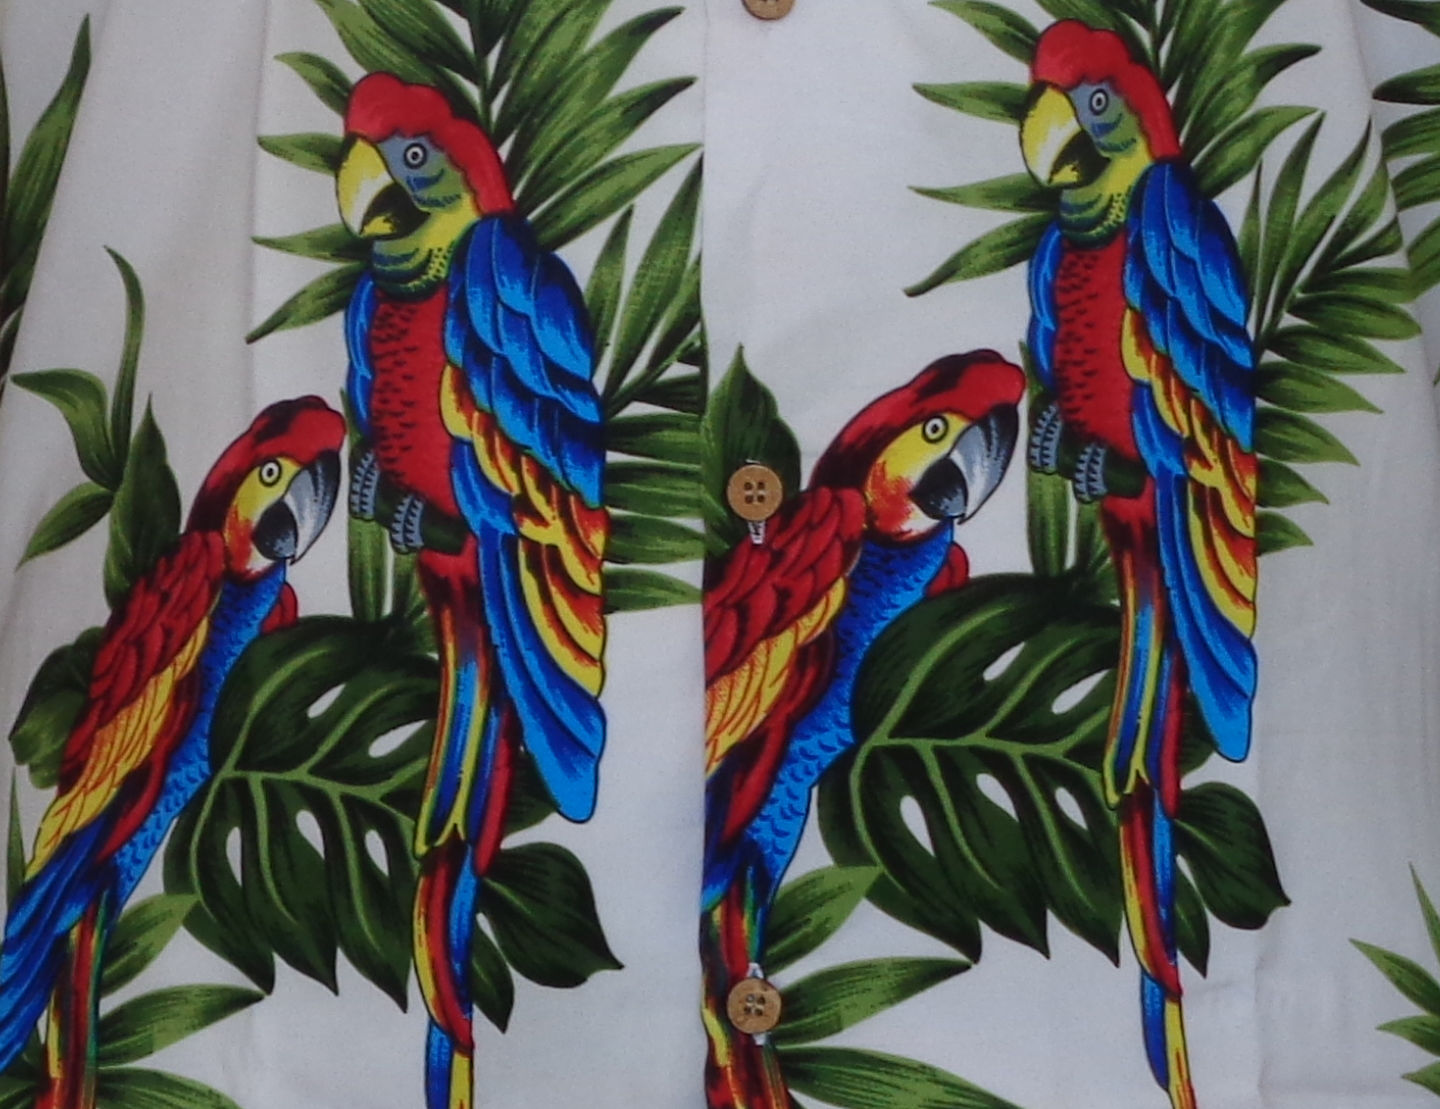 Hawaiian-Shirt-Mens-Parrot-Toucan-Print-Beach-Aloha-Party-Holiday-Camp thumbnail 13